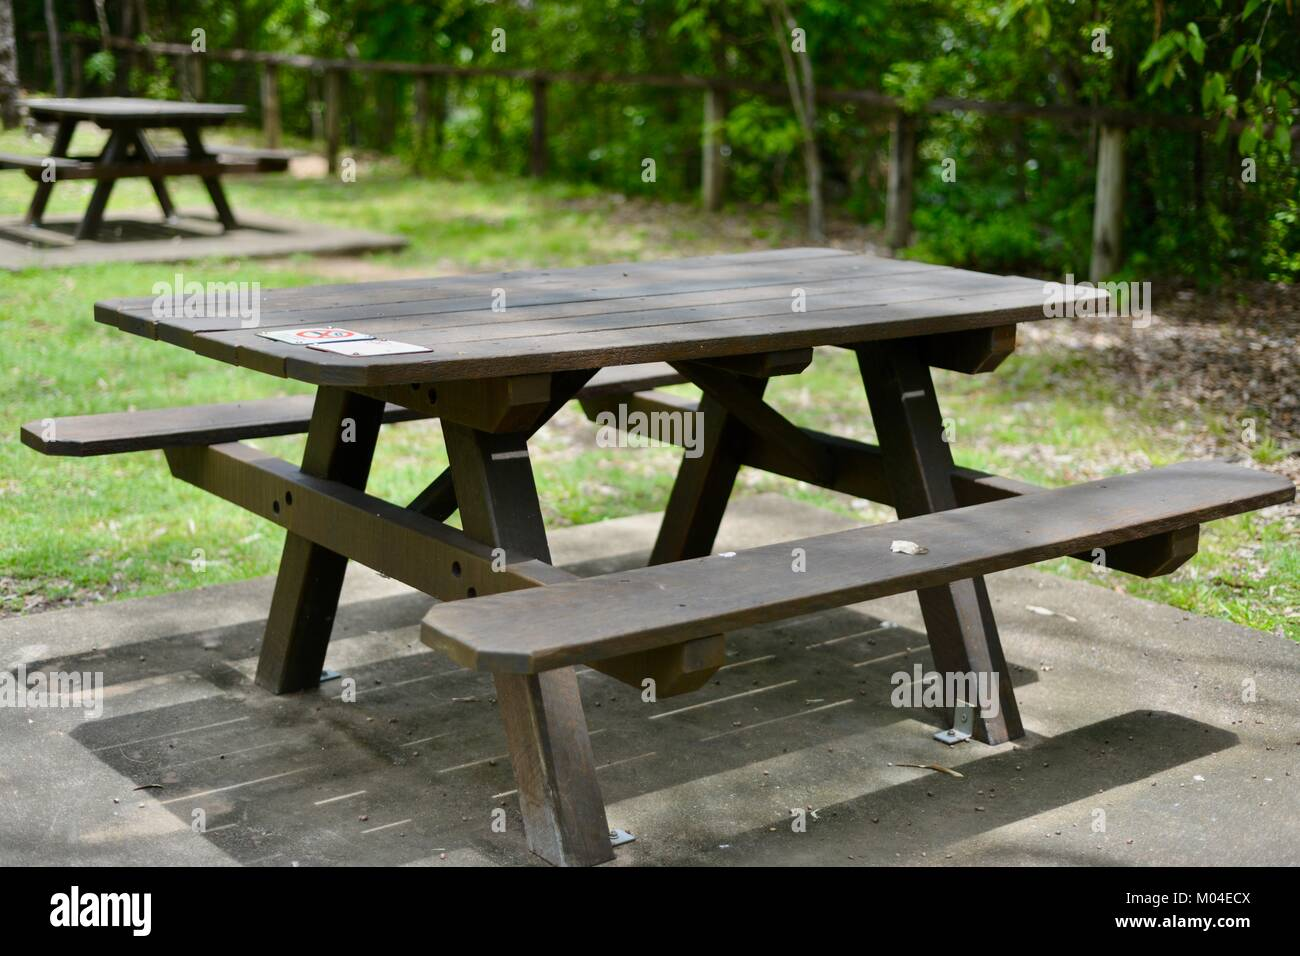 Stupendous Brown Wood Public Picnic Table And Chairs Alternatively Gmtry Best Dining Table And Chair Ideas Images Gmtryco